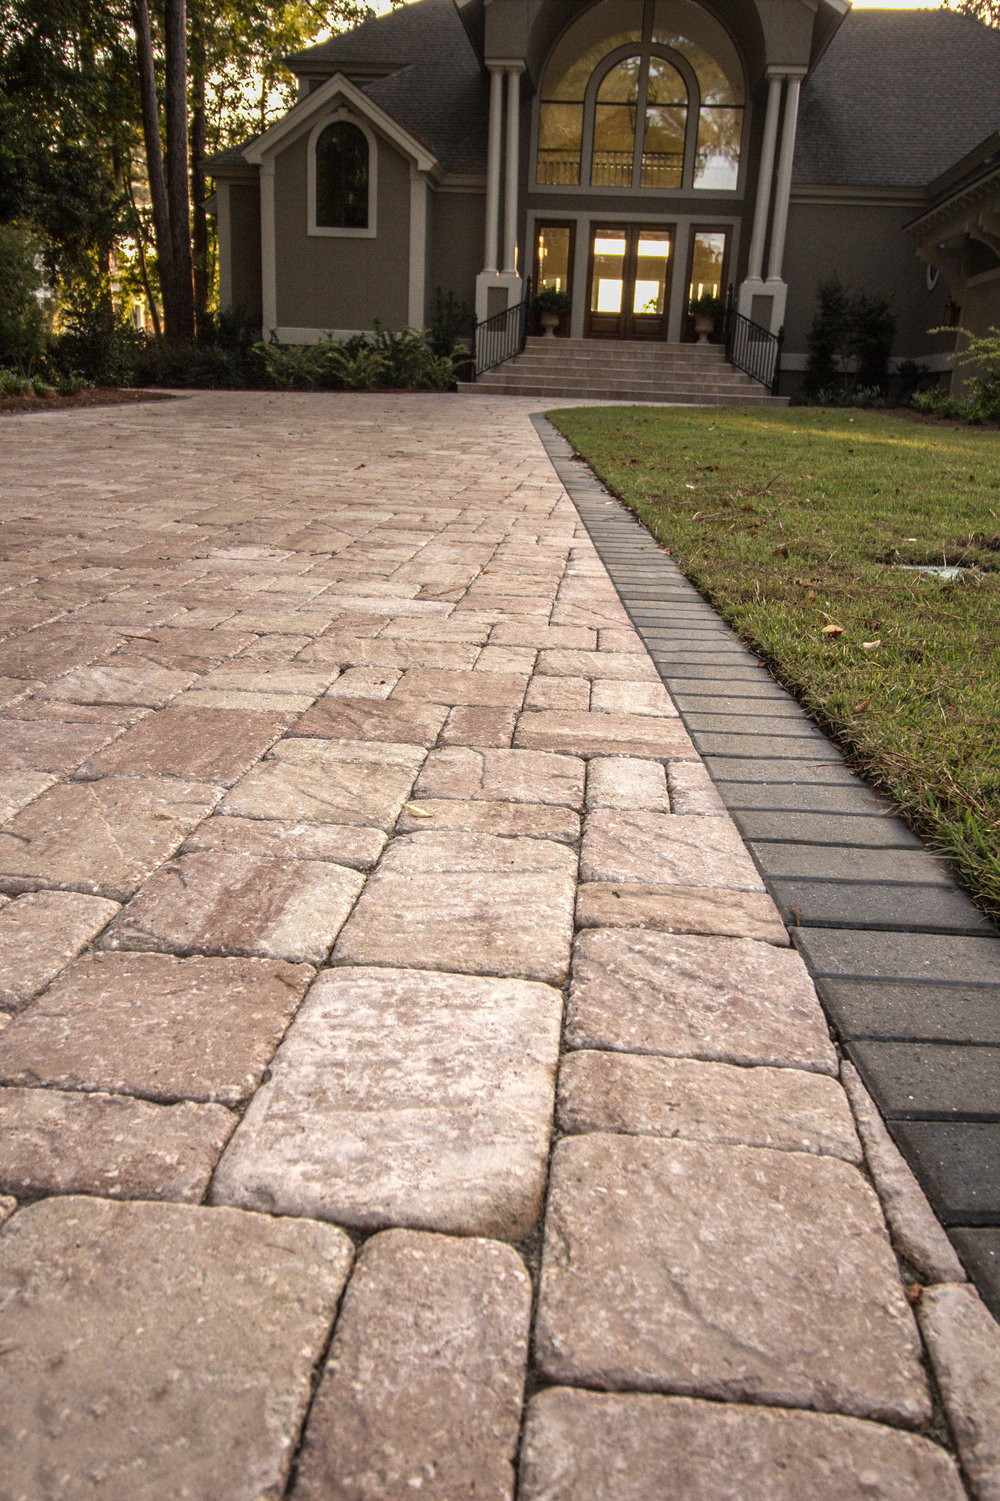 Many of our clients enjoy the Old World look and feel of tumbled brick pavers.  This paver driveway on Hilton Head Island, SC  used a Tremron 3pc Roma tumbled paver, in Sand Dune. Classically paired with a standard 4x8 non tumbled border. Beautiful!